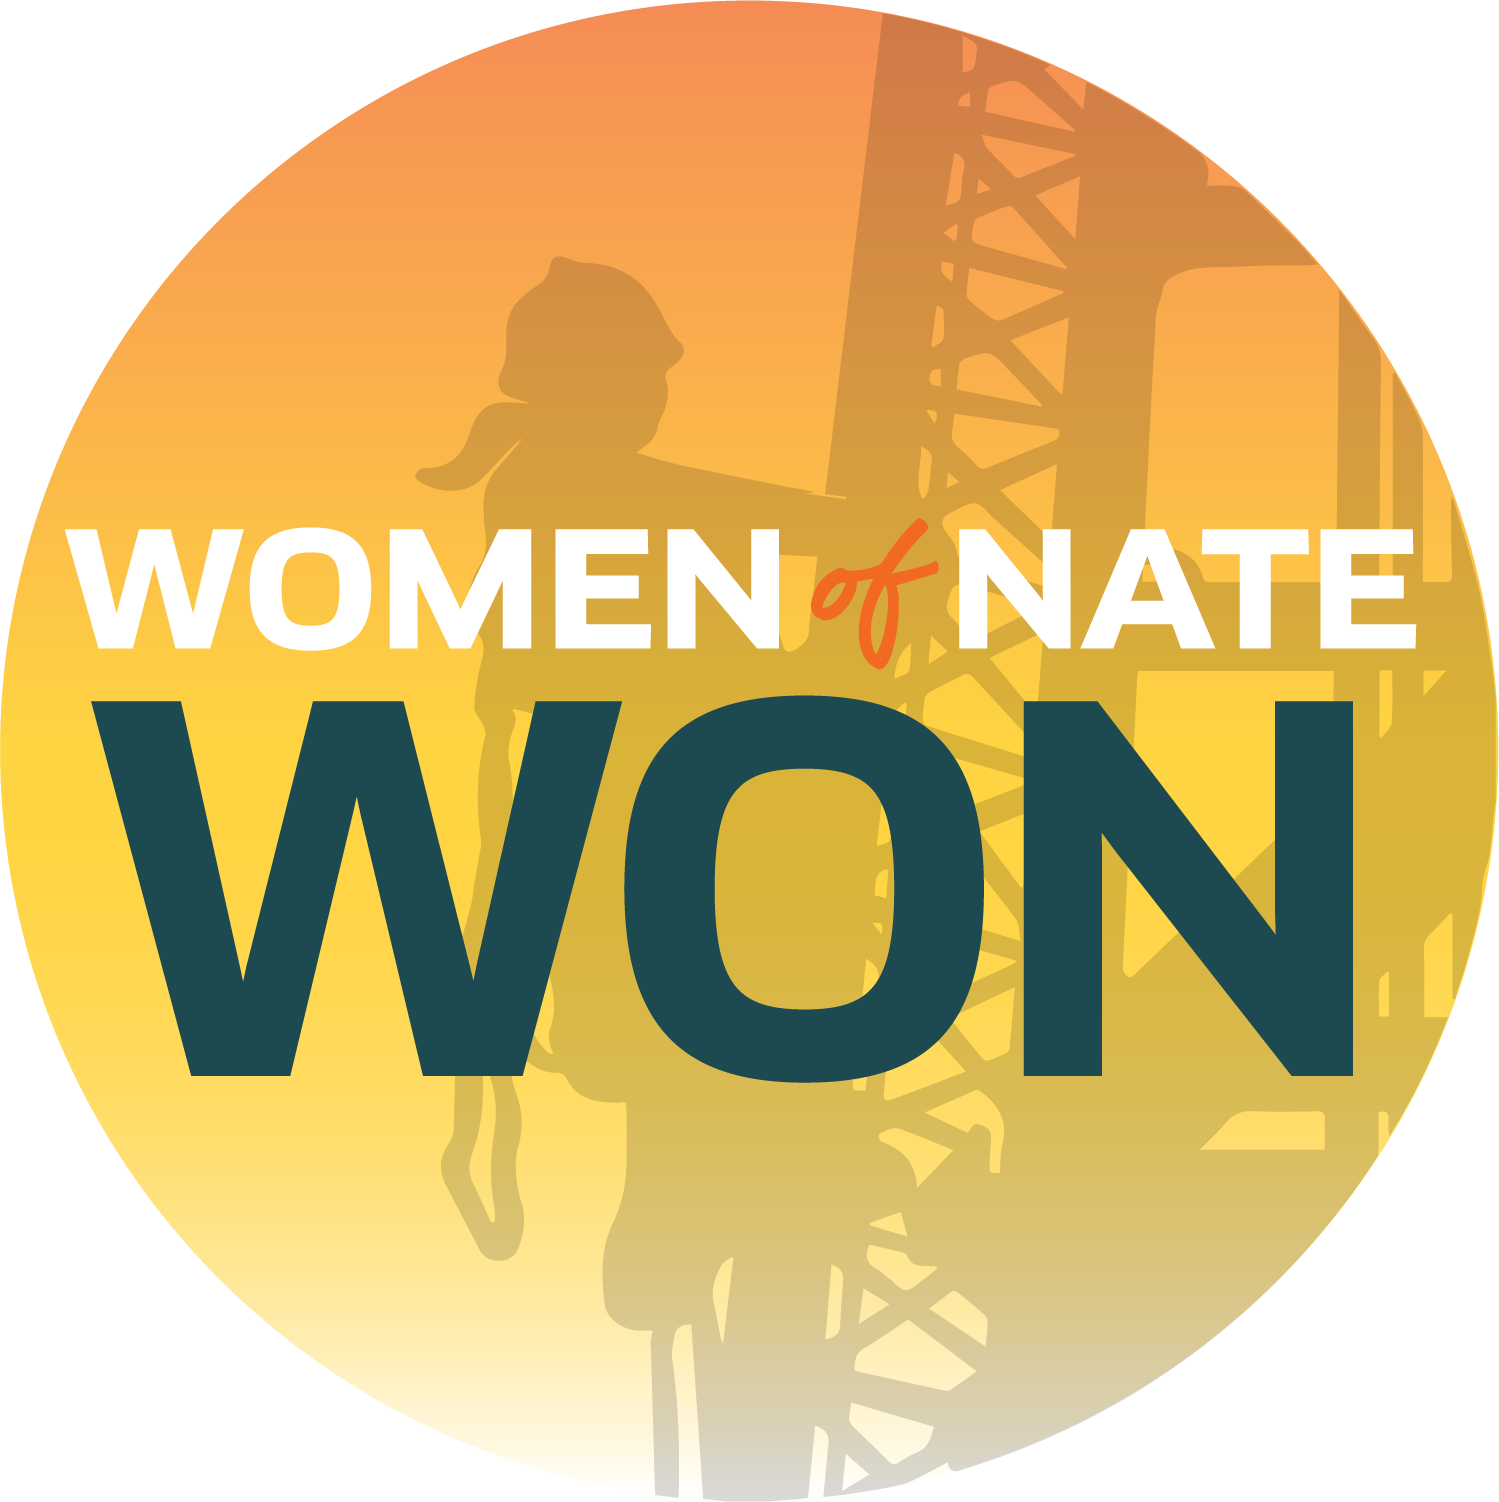 Women Of Nate New Logo 2020